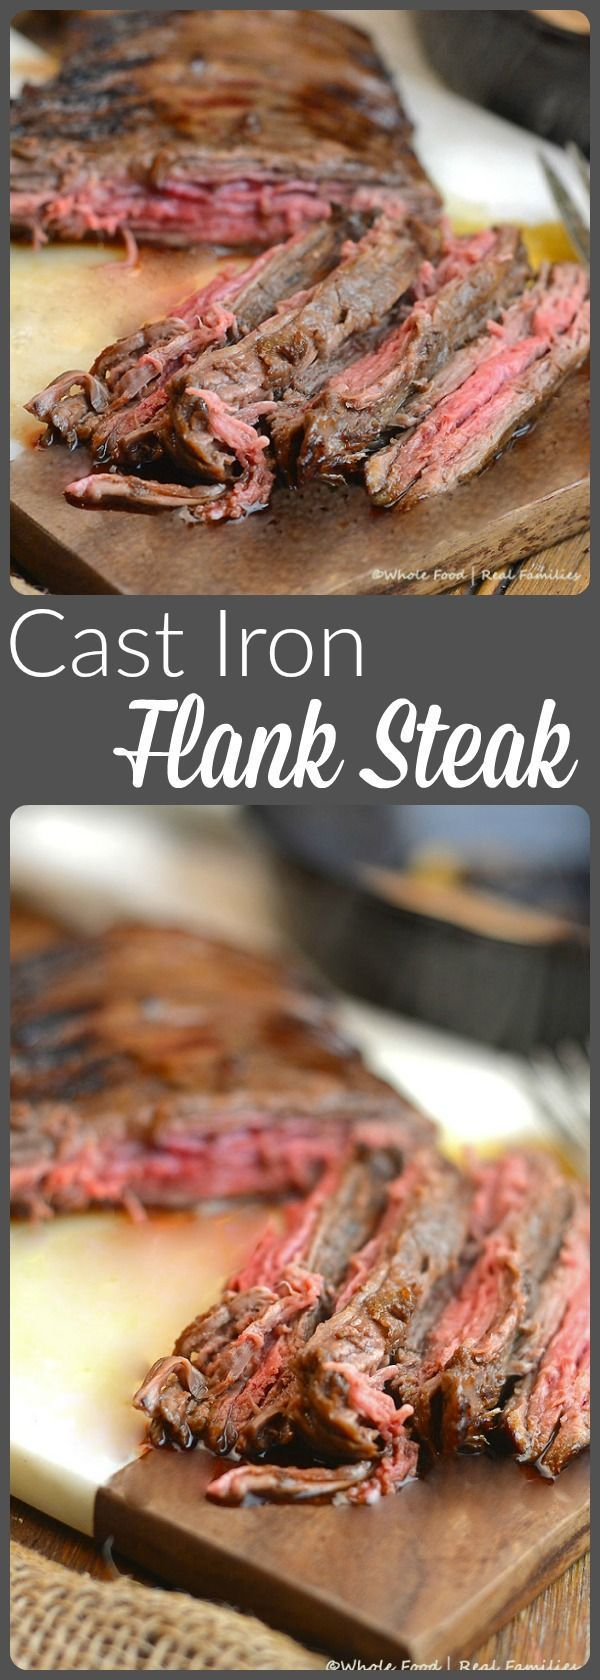 Cast Iron Flank Steak is the perfect weeknight steak dinner. Economical, lean and high in protein, flavorful and cooks in under 10 minutes. Save the leftovers for steak tacos later in the week or use it to top a salad!